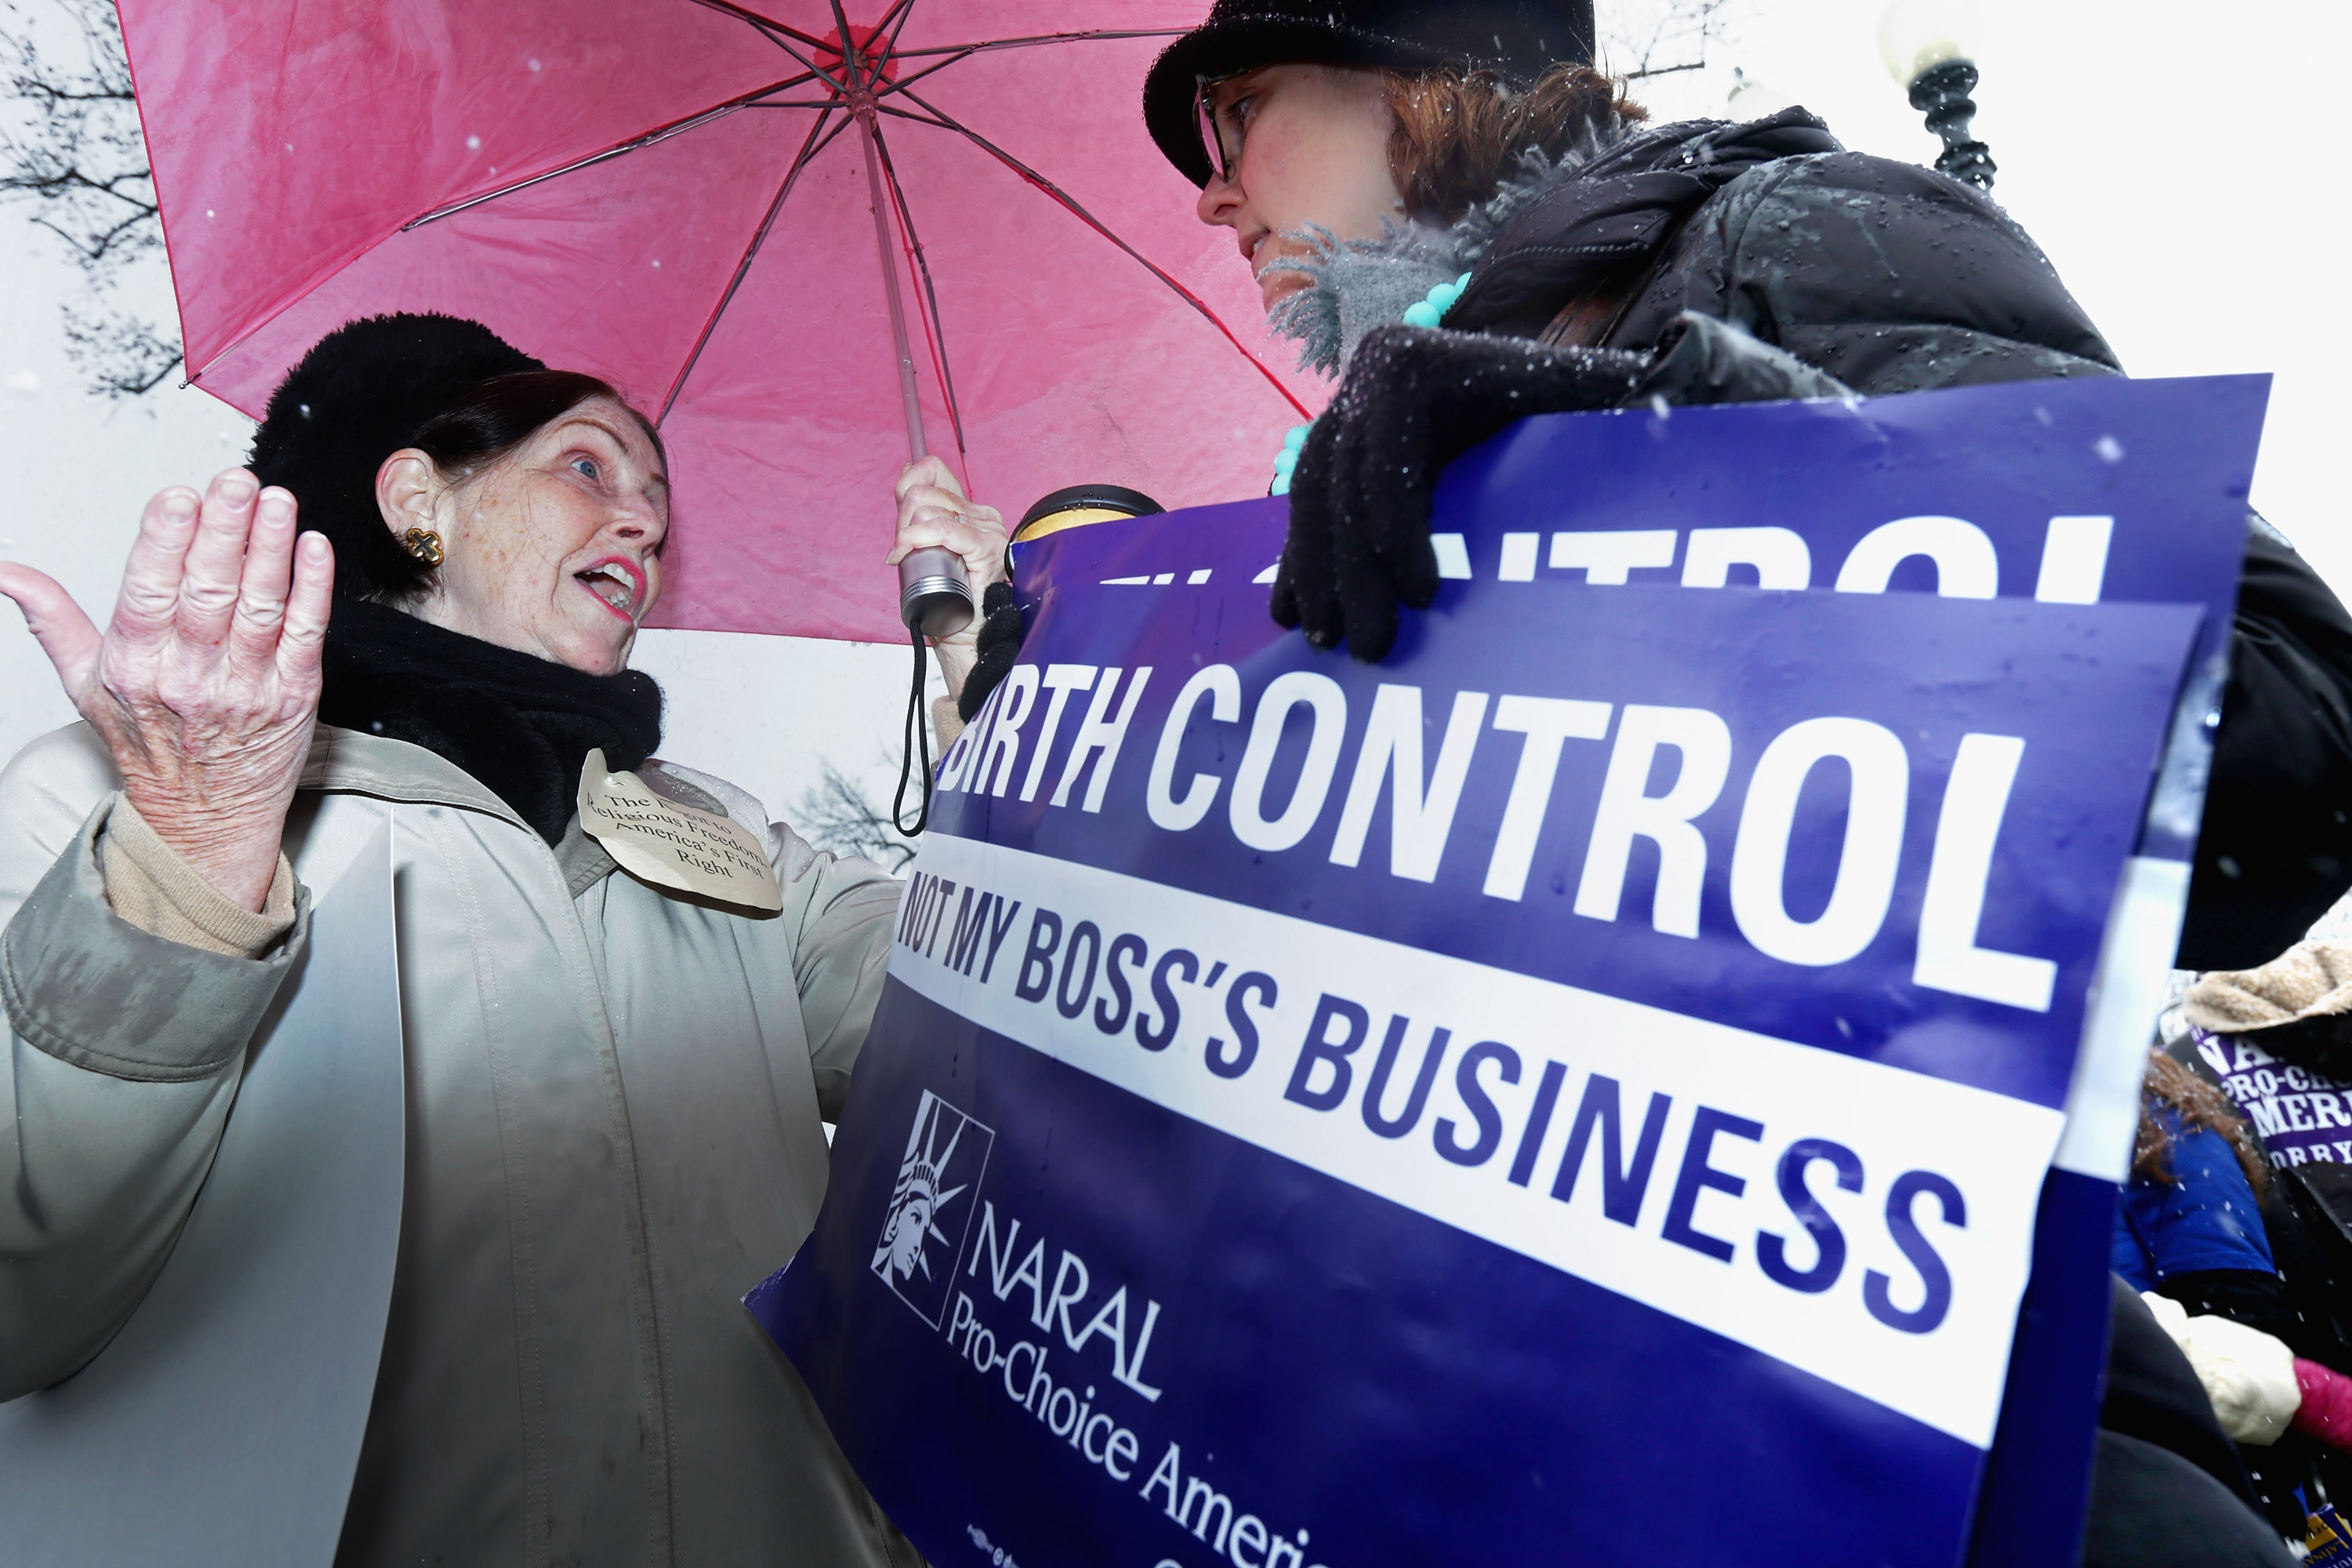 Advocates on opposite sides of the issue debate at rally outside the Supreme Court during oral arguments on birth control coverage.